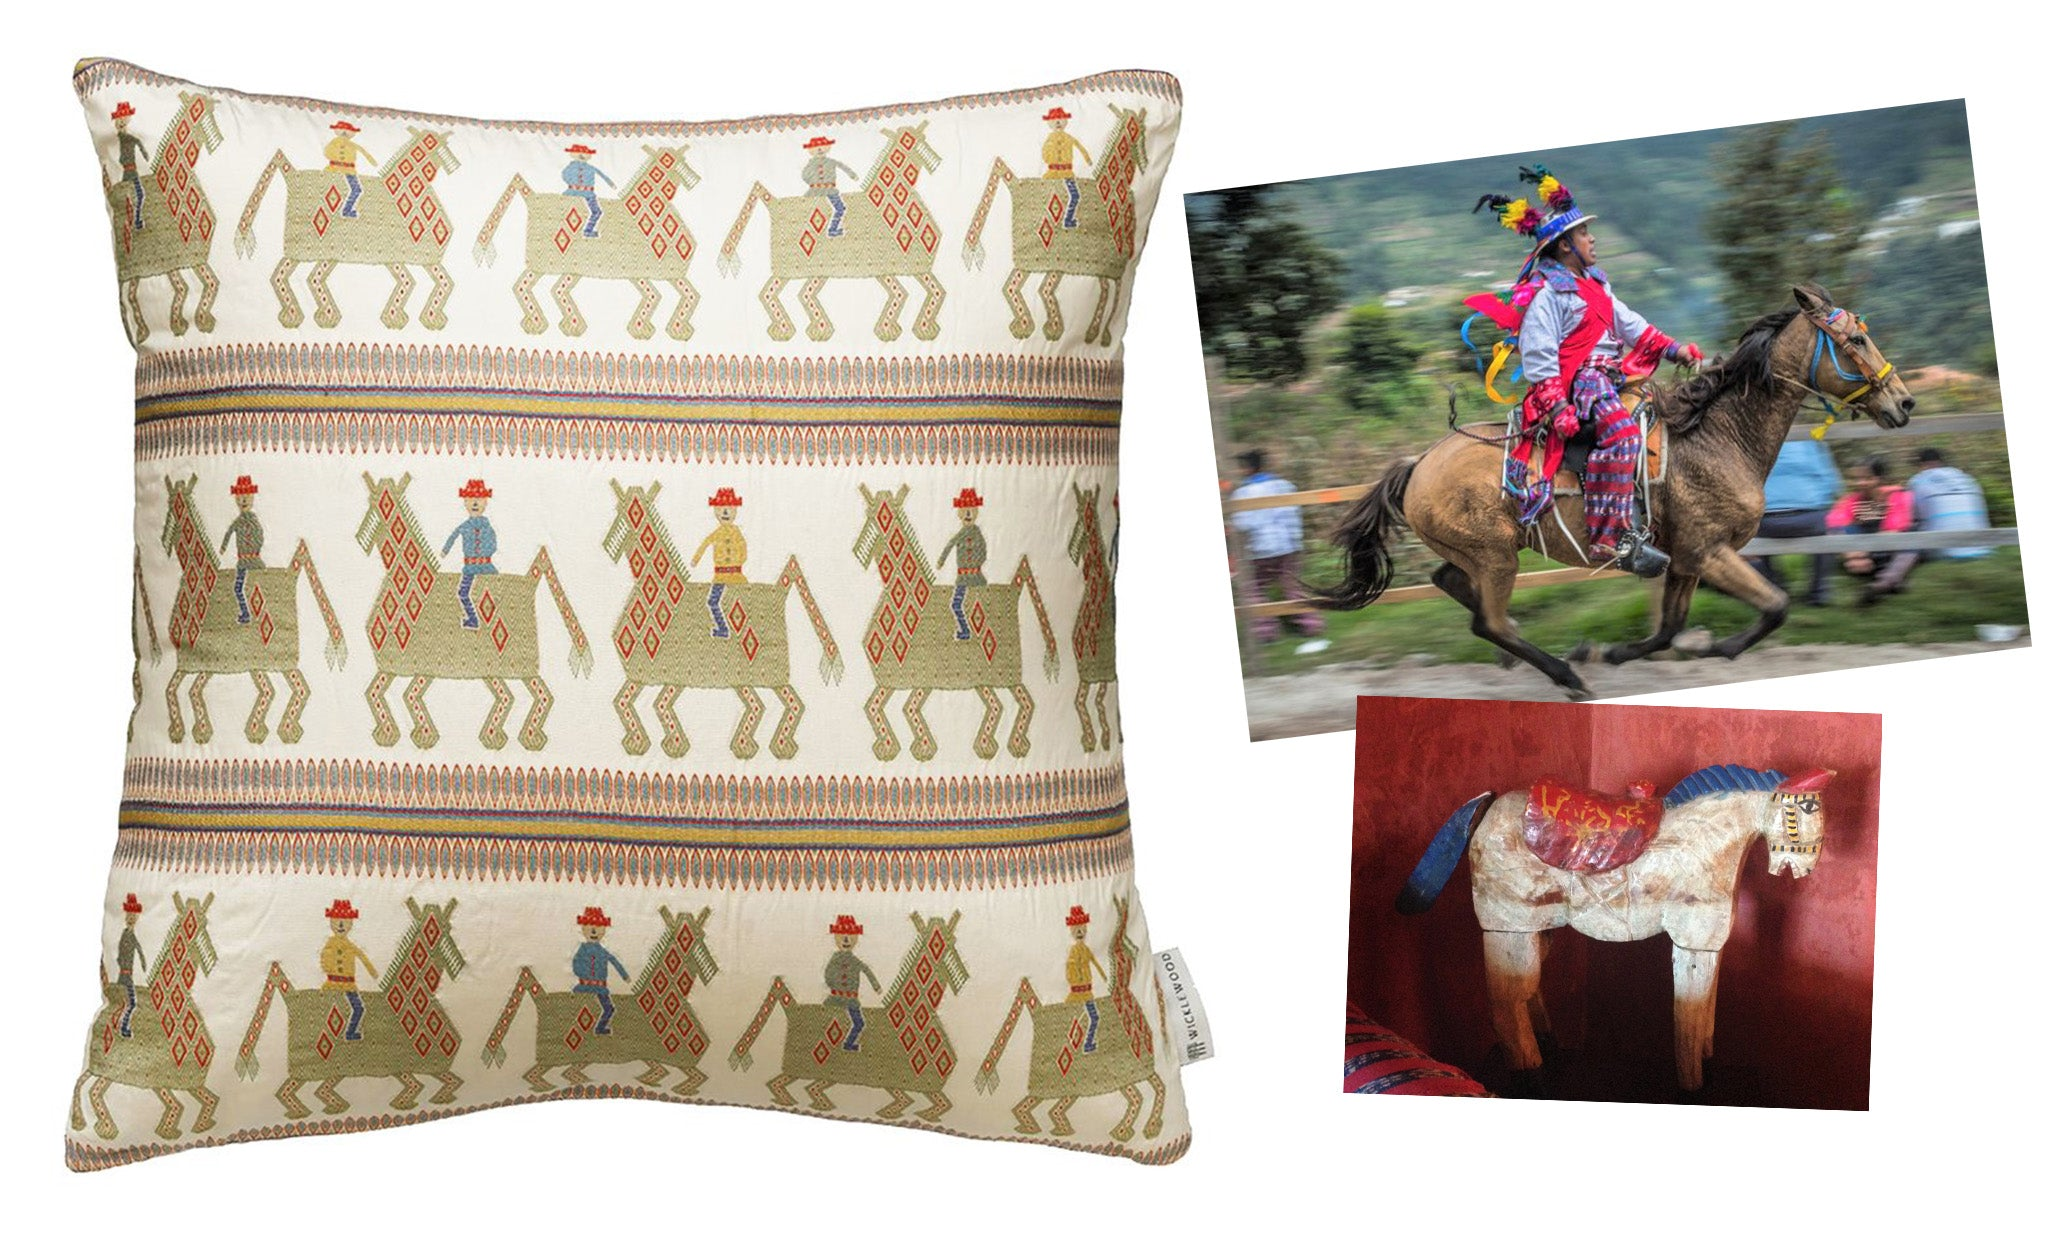 The caballo cushion was inspired by Lilly de Jongh Osborne collection as well as the All Saints celebration in Guatemala where men race horses